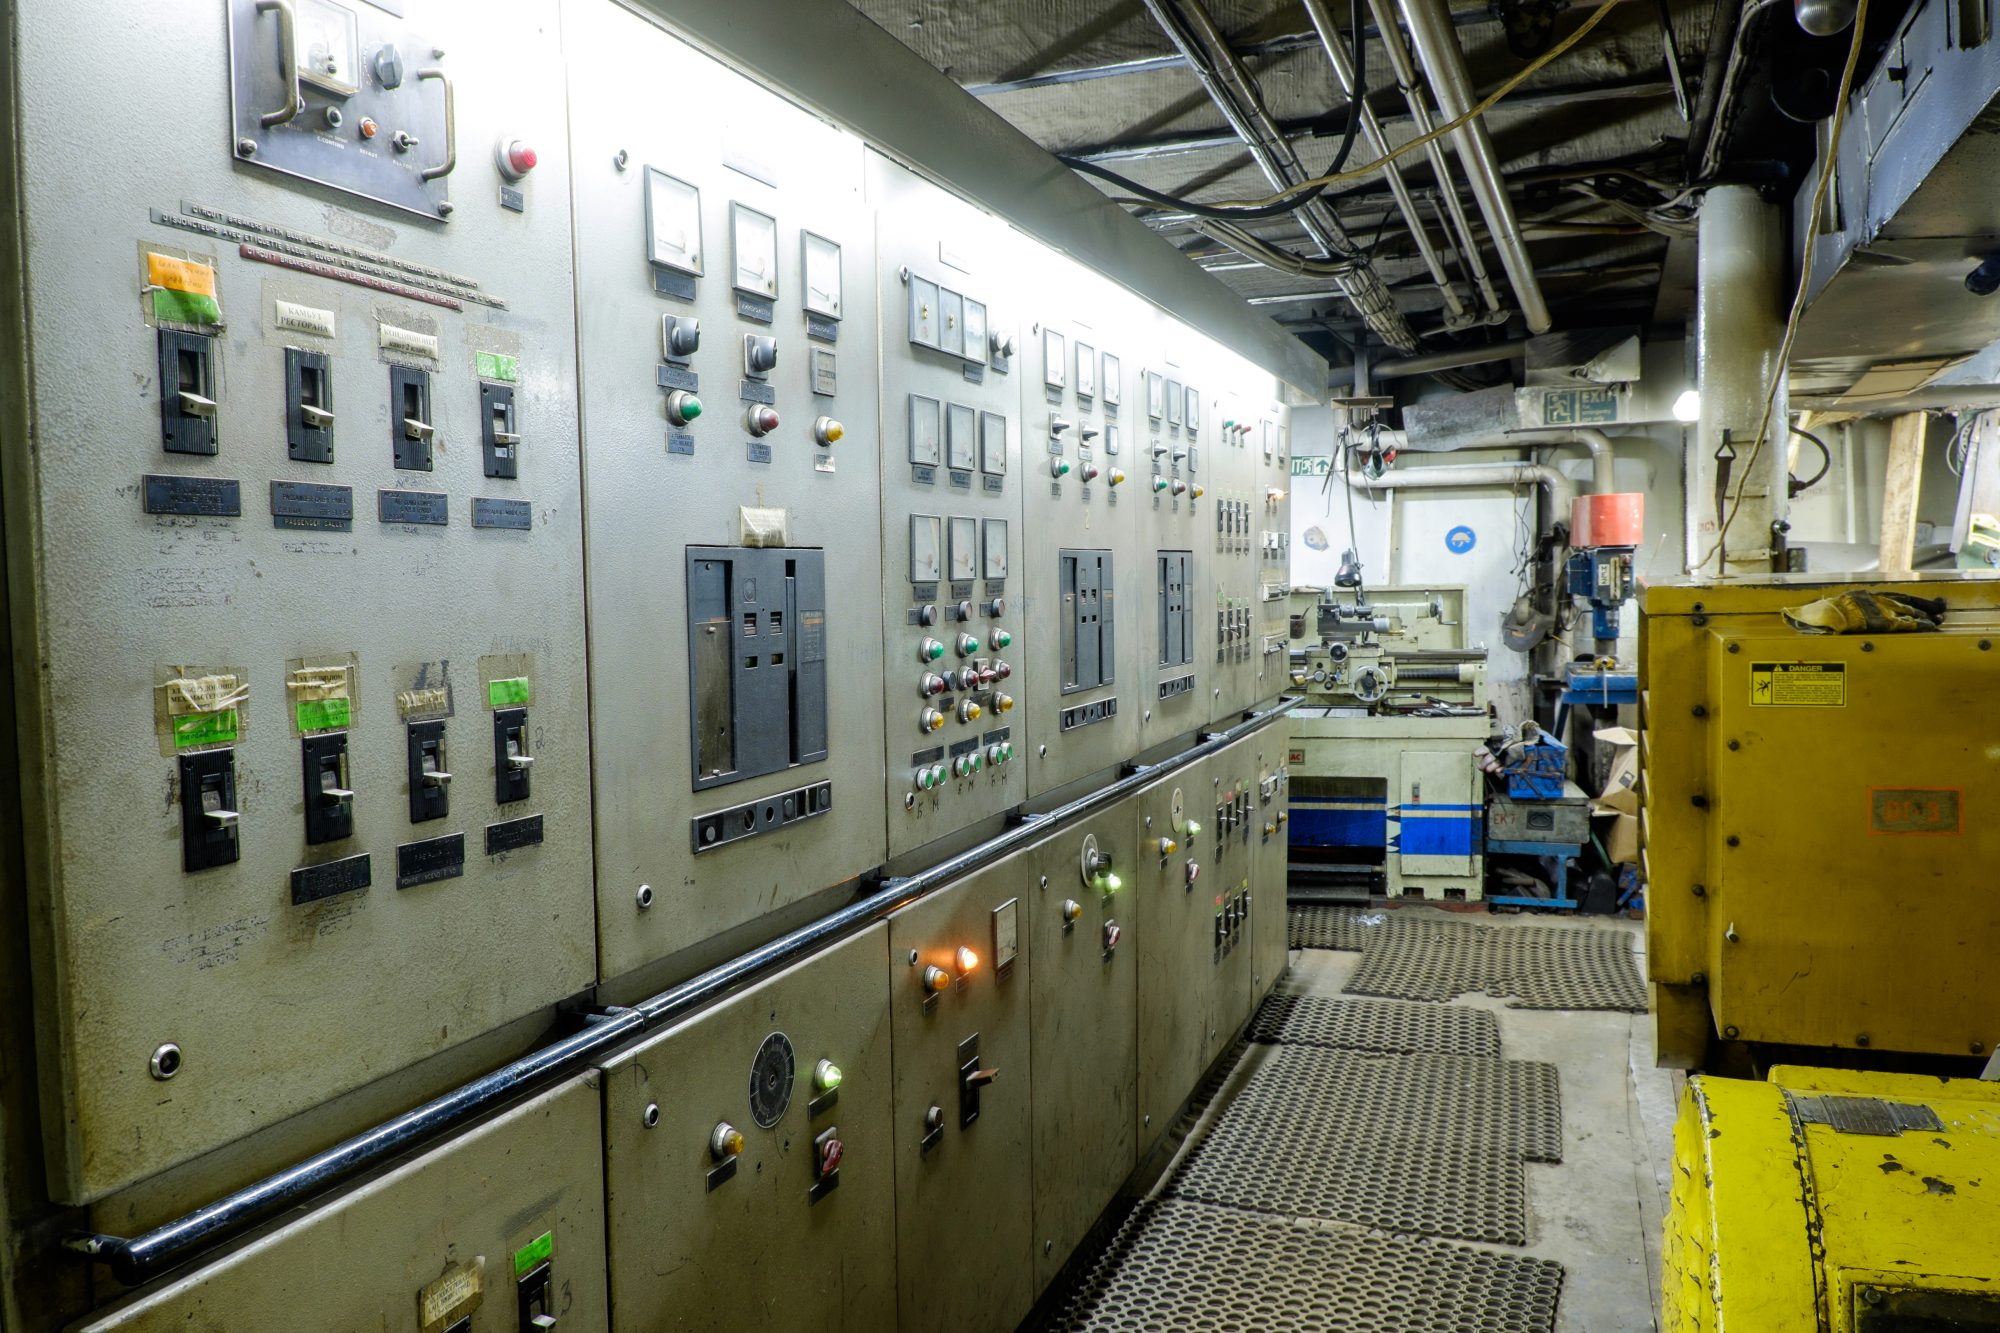 Maritime Electricians and Electrical Room Injuries